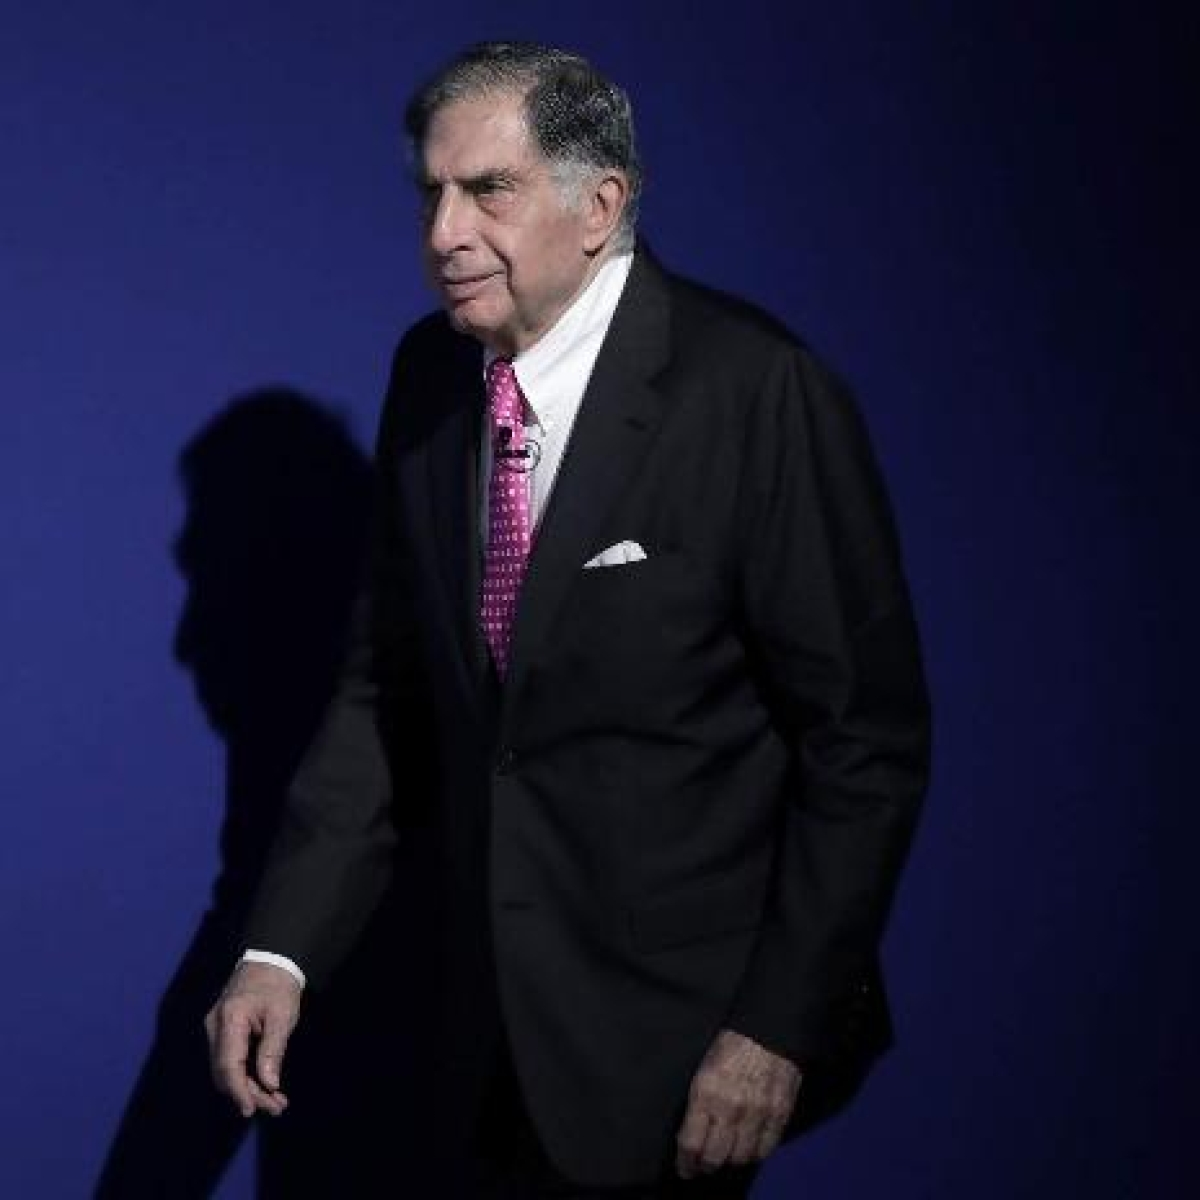 Ratan Tata pledges for better 'Indian environment' with fresh air, clean water on World Environment day